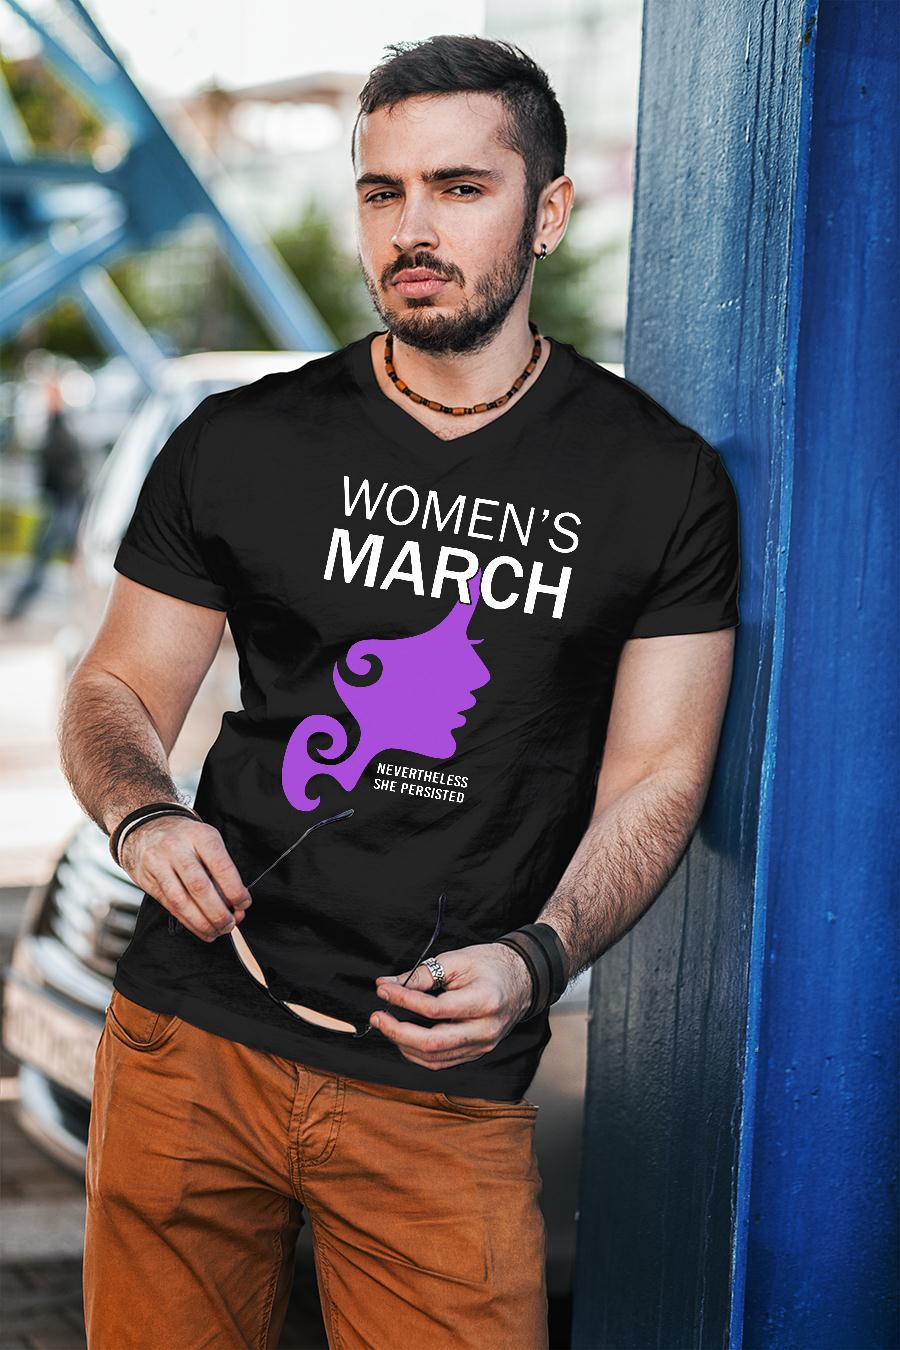 Womens March 2019 Shirt Nevertheless She Persisted shirt unisex